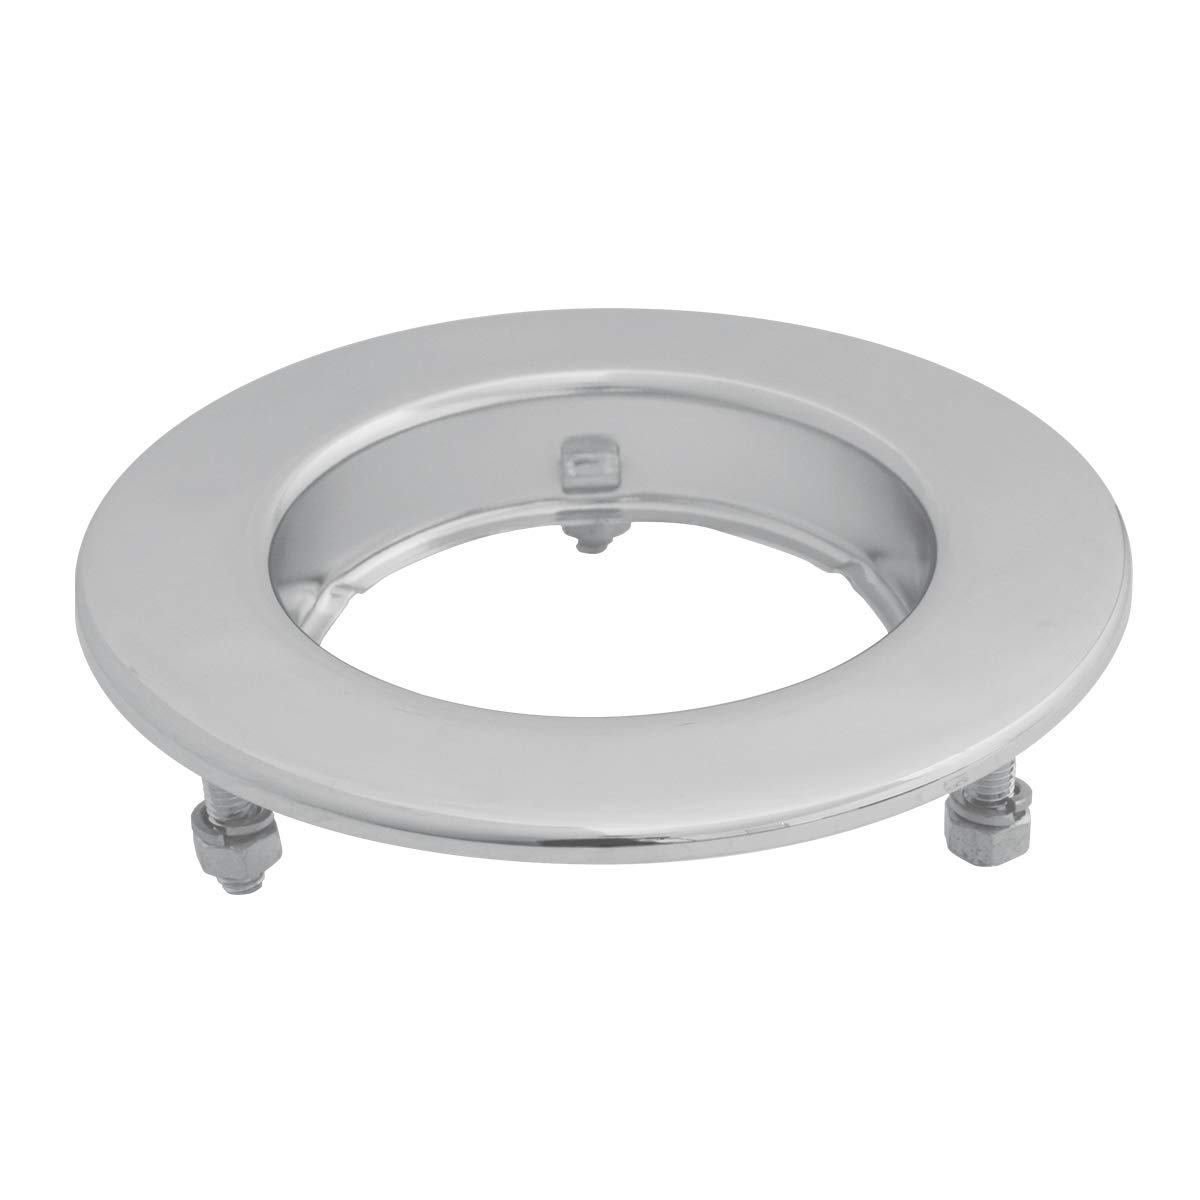 GG Grand General 87218 Chrome LED Light Clear Steel Flange Mount Rim with 3 Studs for Gg 2.5